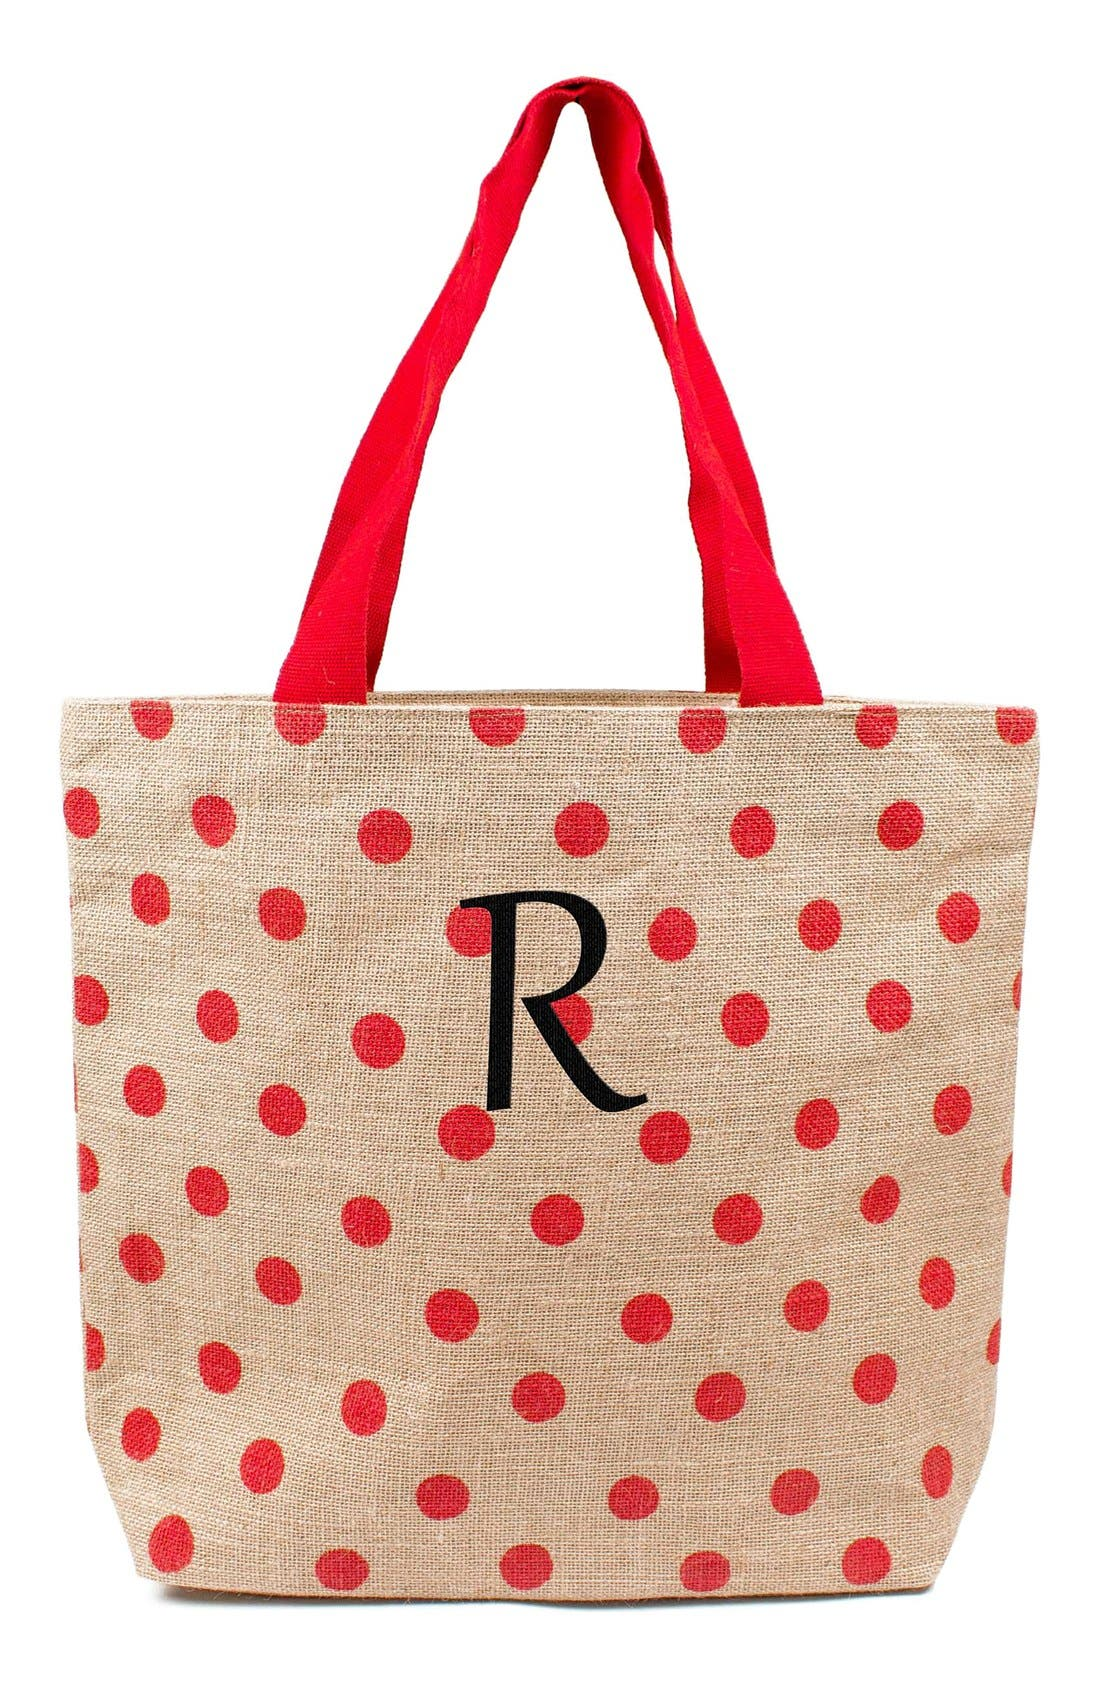 Alternate Image 1 Selected - Cathy's Concepts Monogram Polka Dot Jute Tote